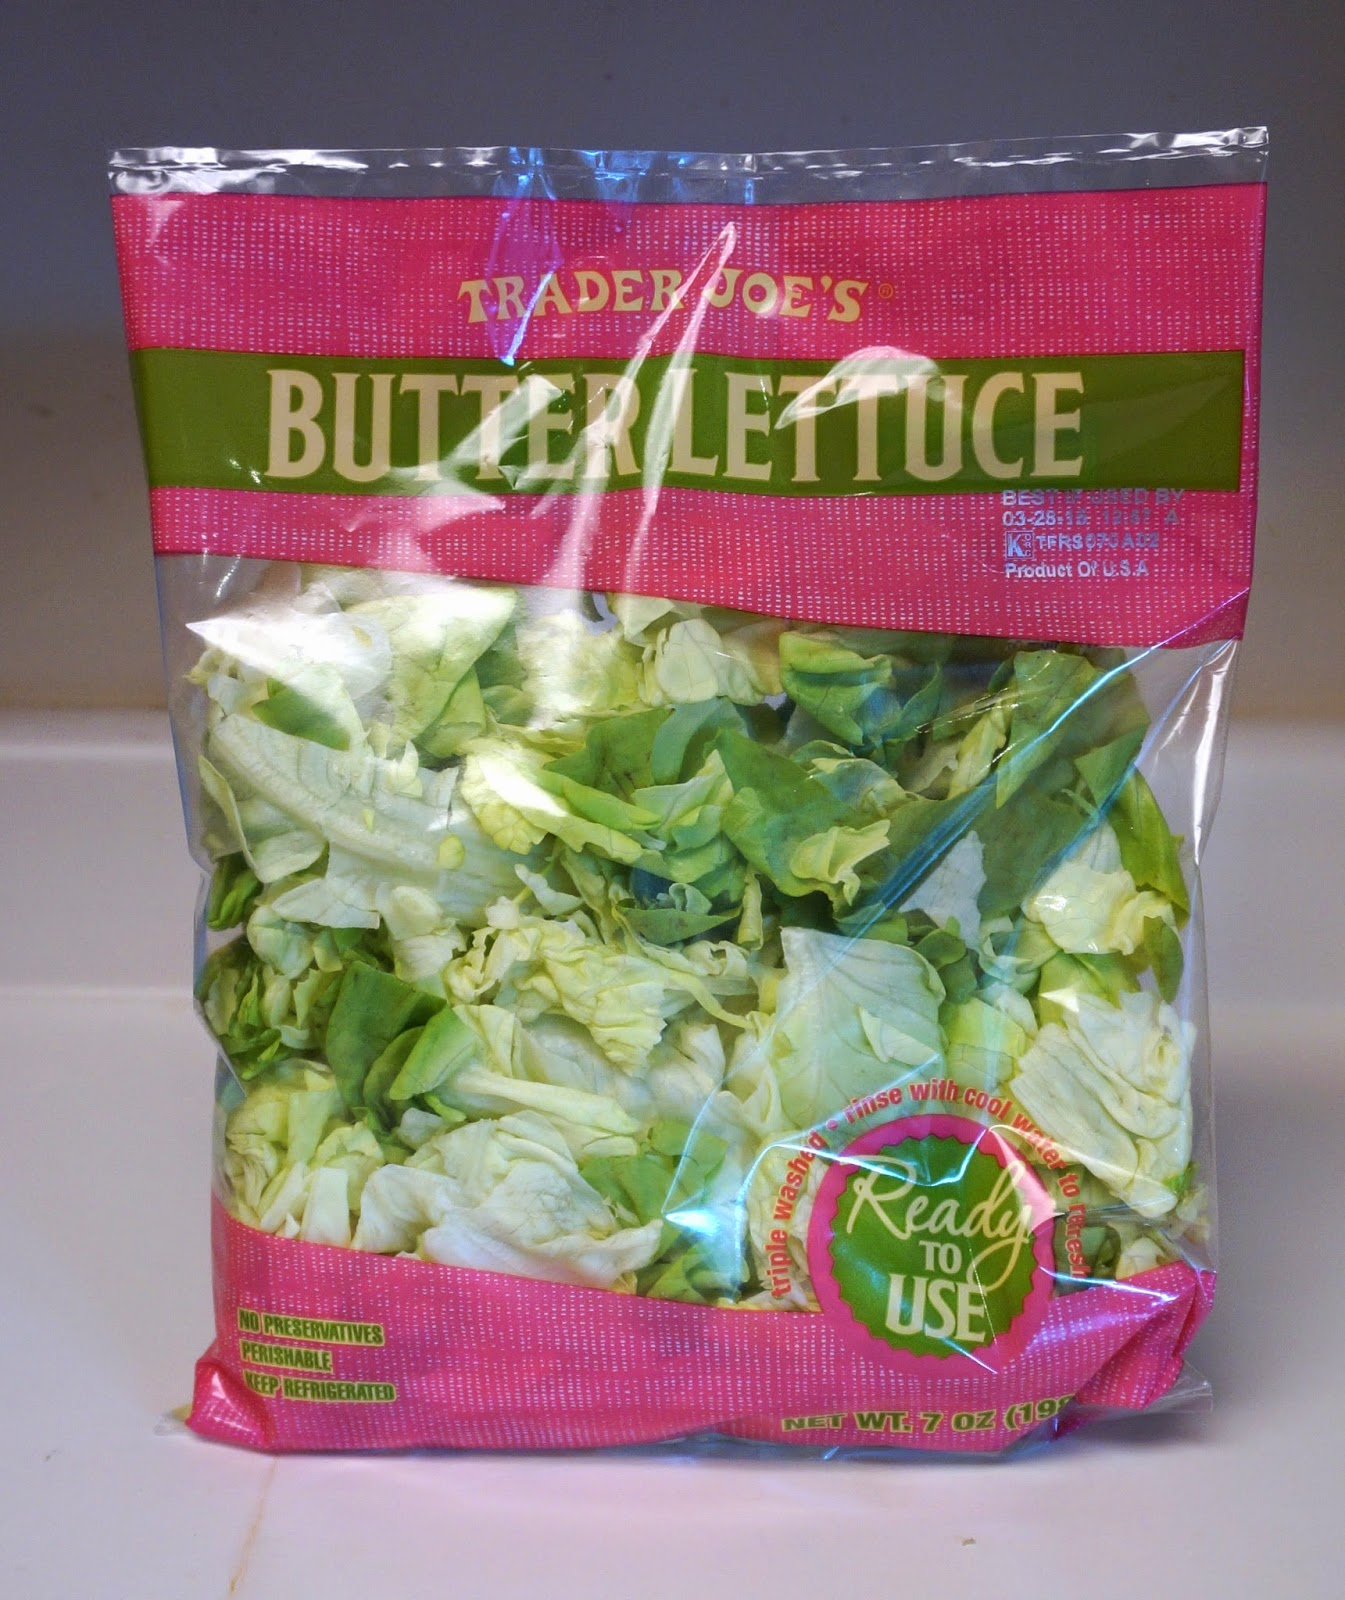 I Ve Never Bought Er Lettuce Before Had Seen These Bags At Trader Joe S Many Times But Didn T Know What Would Do With It On A Recent Trip